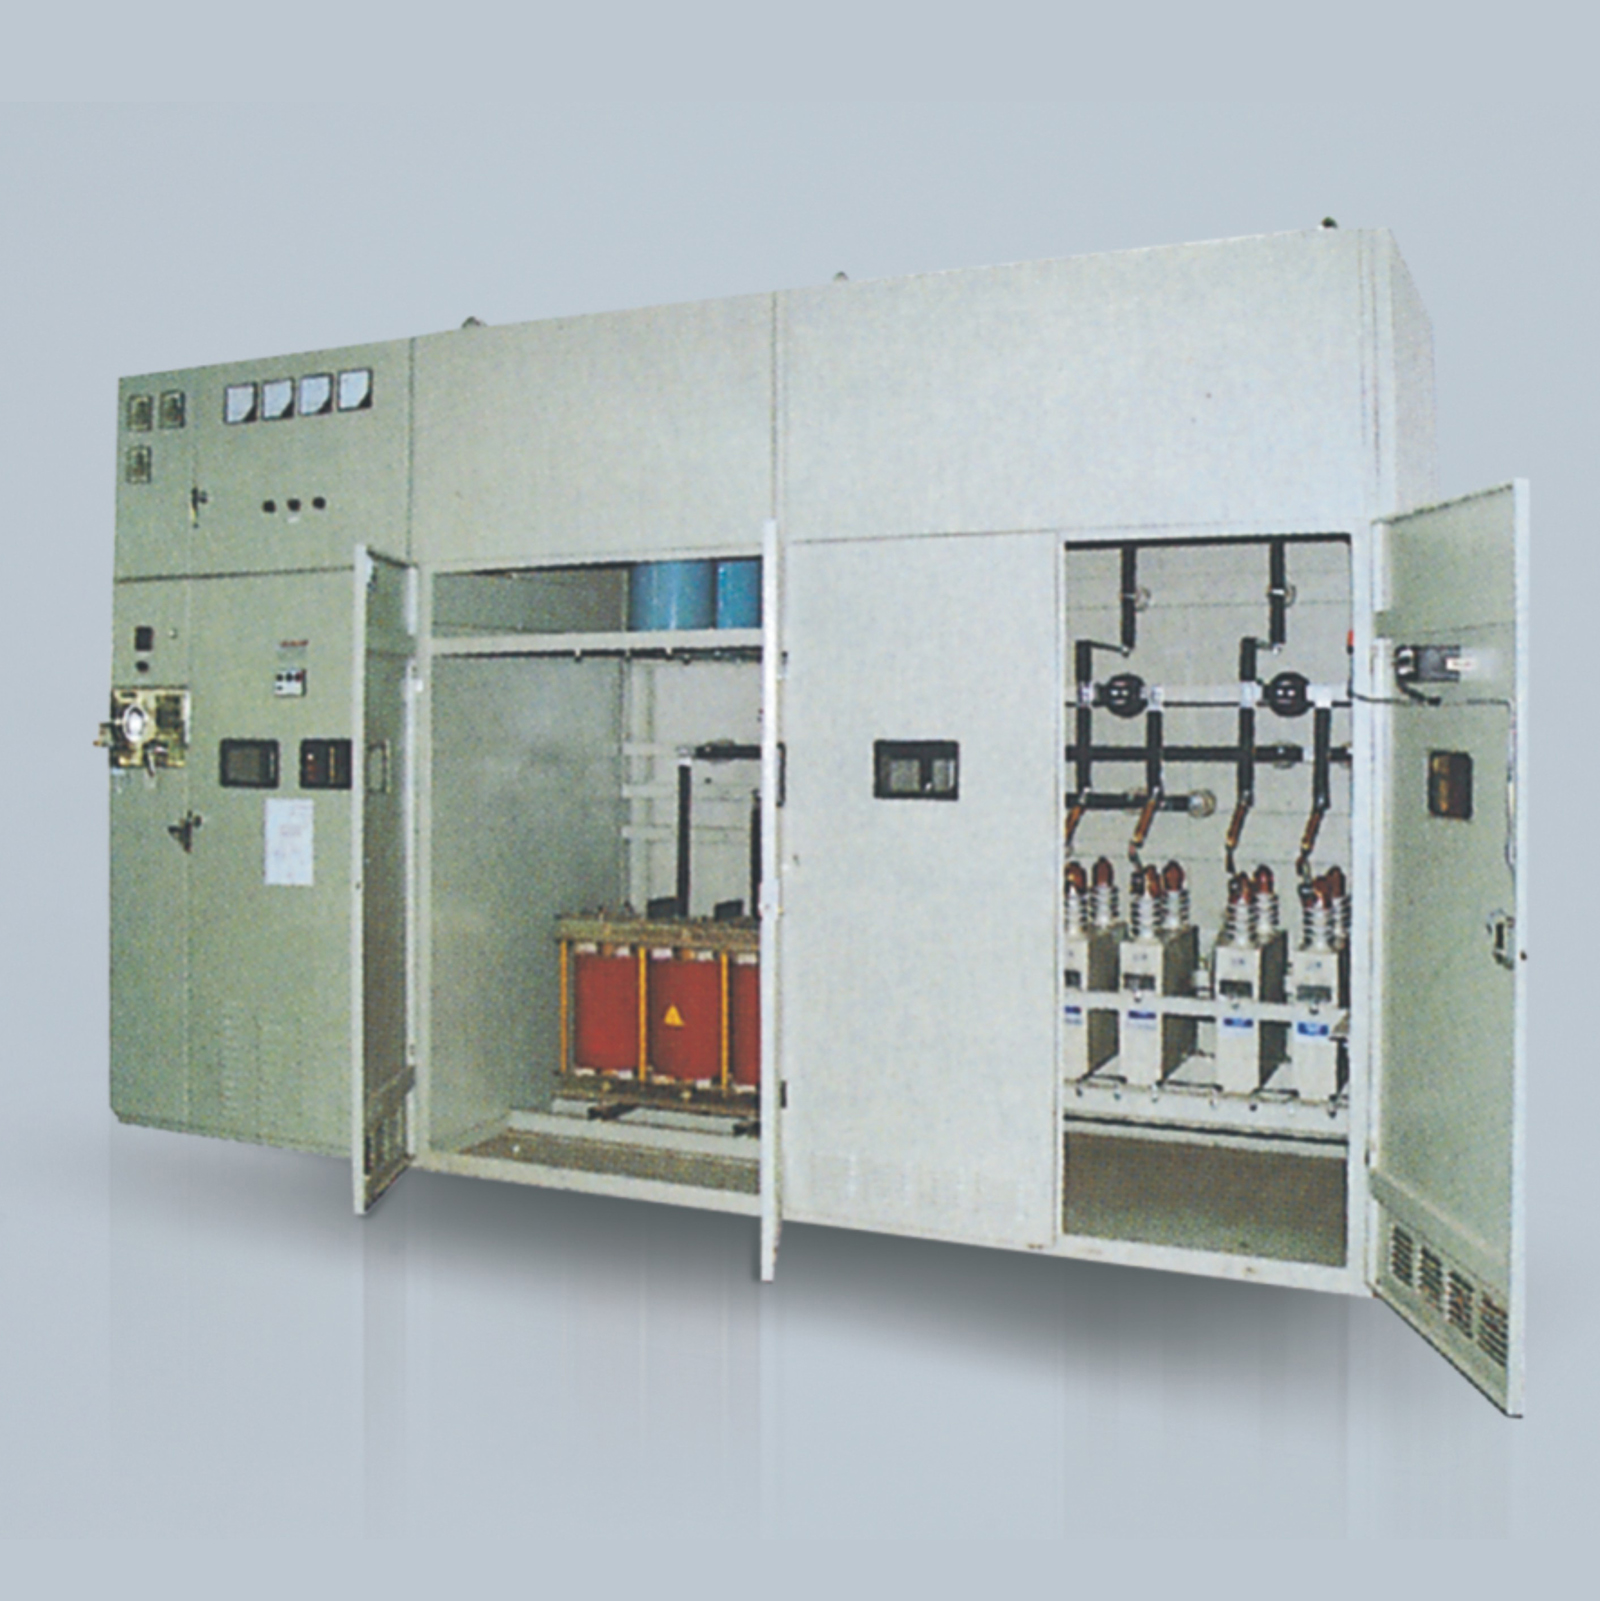 TBB High voltage shunt capacitor compensating switchgear